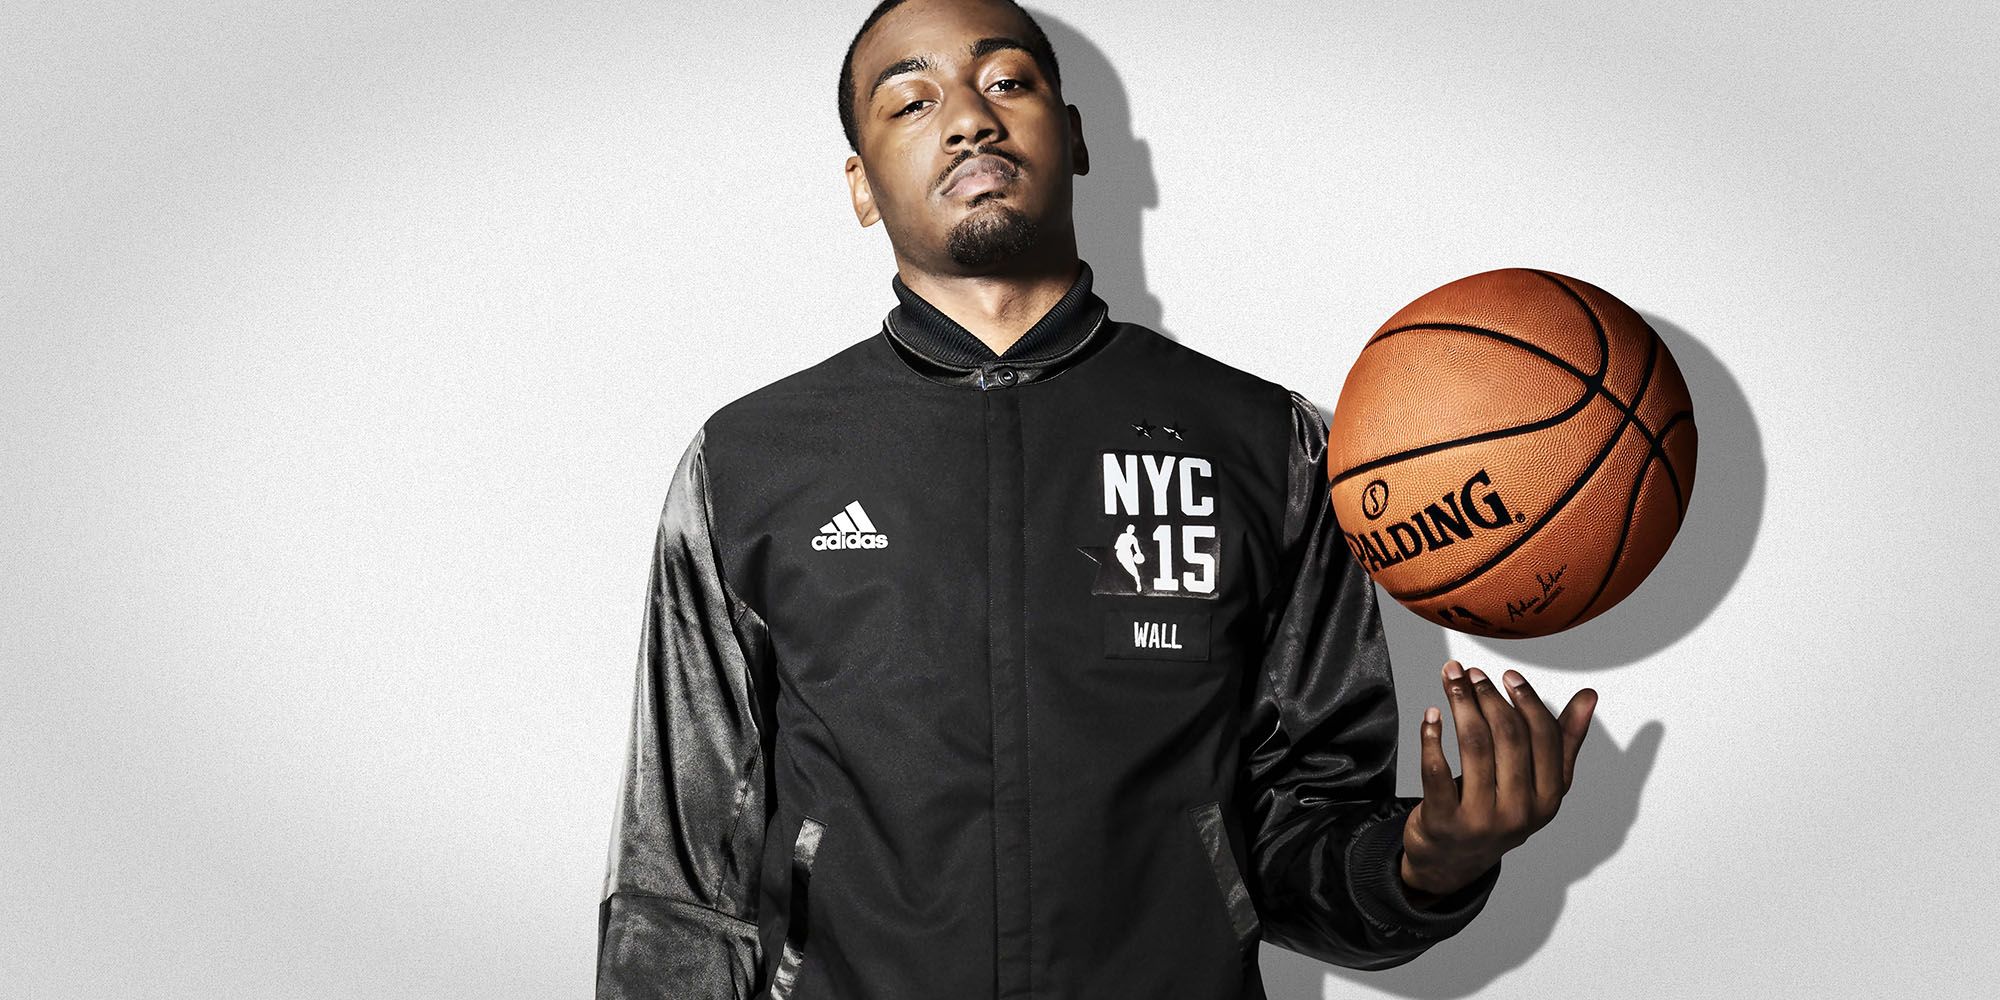 adidas John Wall NBA All-Star 2015 3 H b